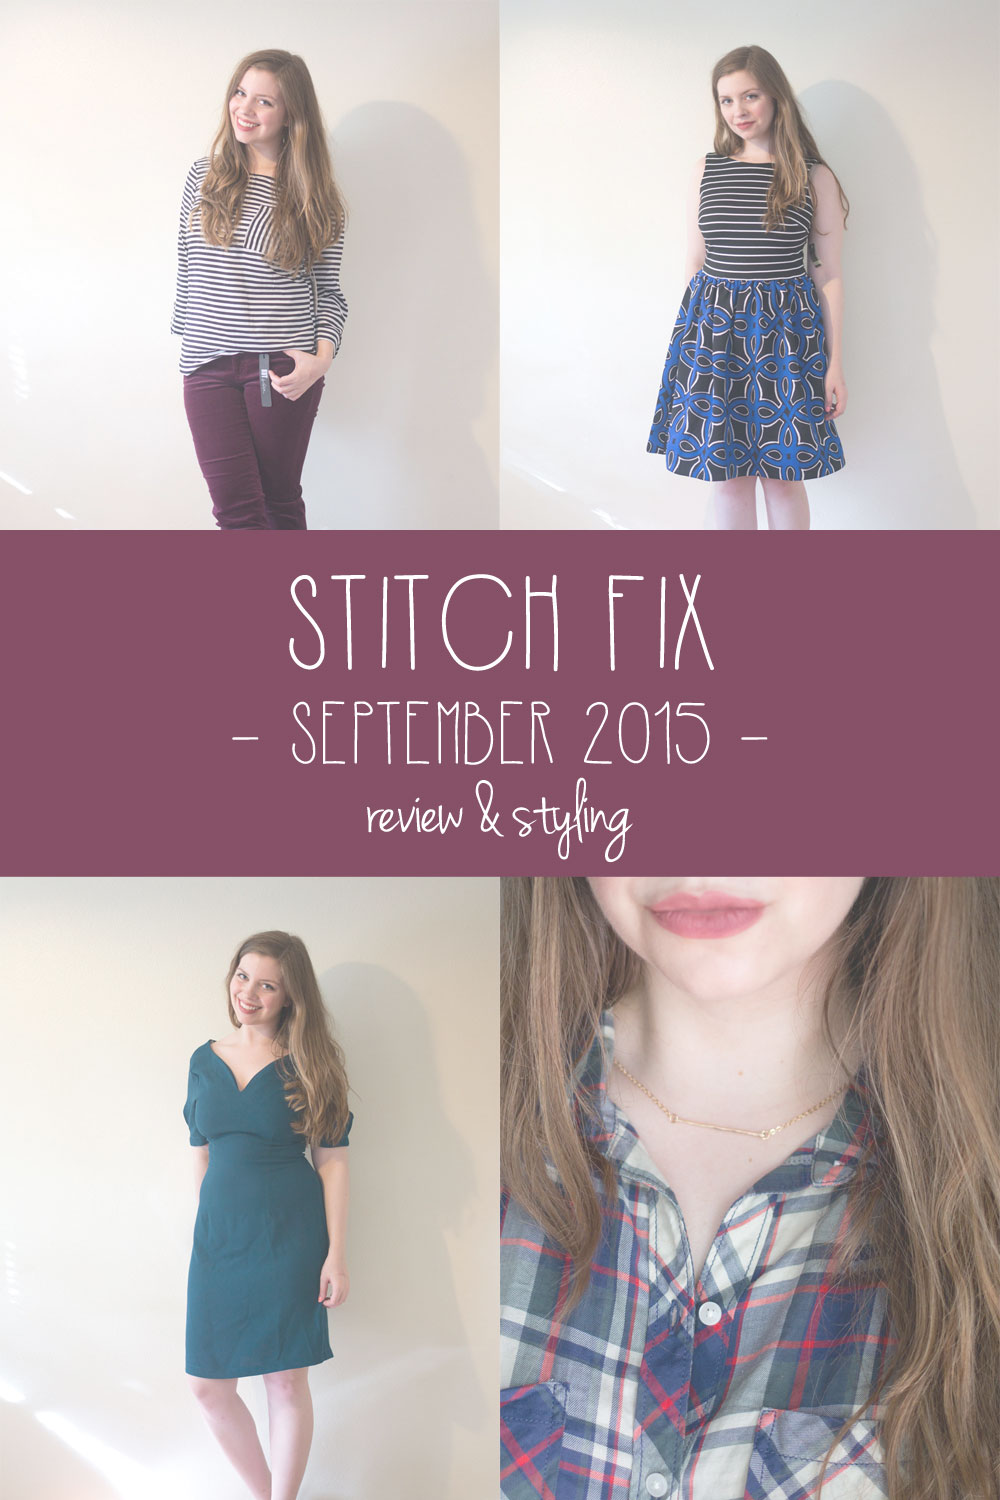 Stitch Fix September 2015 Review & Styling // hellorigby seattle fashion blog